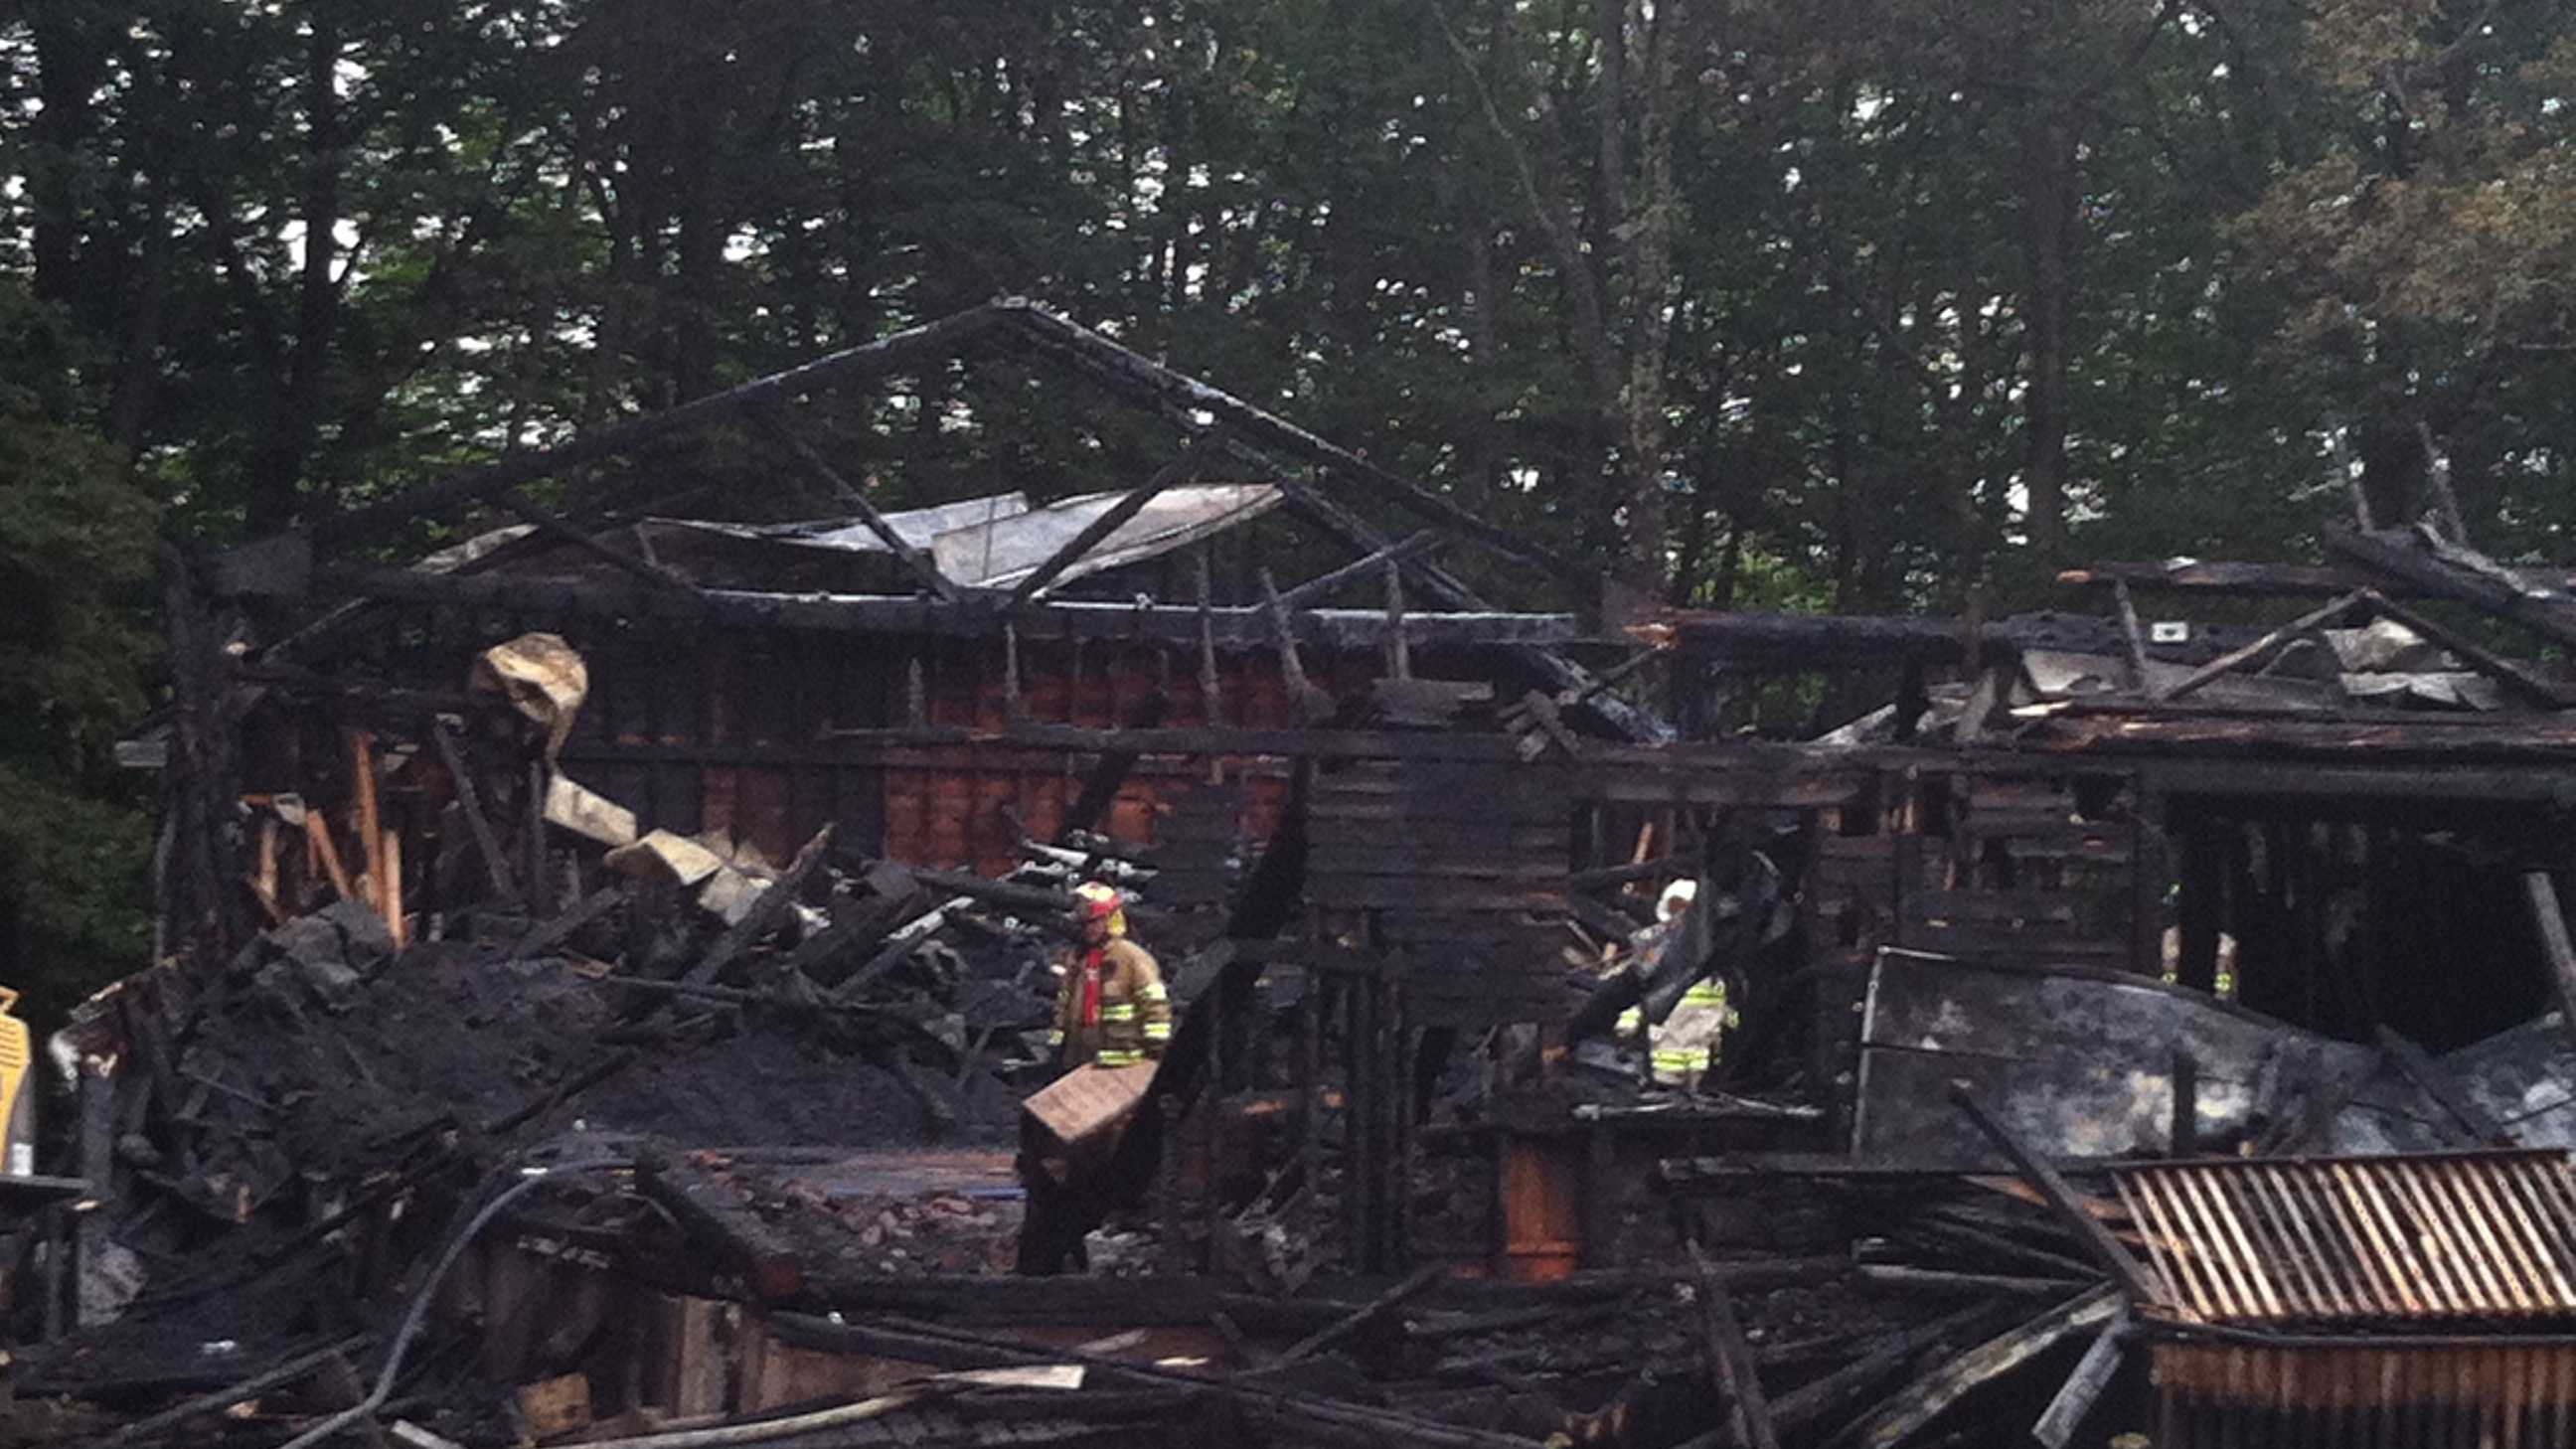 A fire early Friday morning destroyed a grange hall in North Yarmouth. Click through for more pictures from the scene.